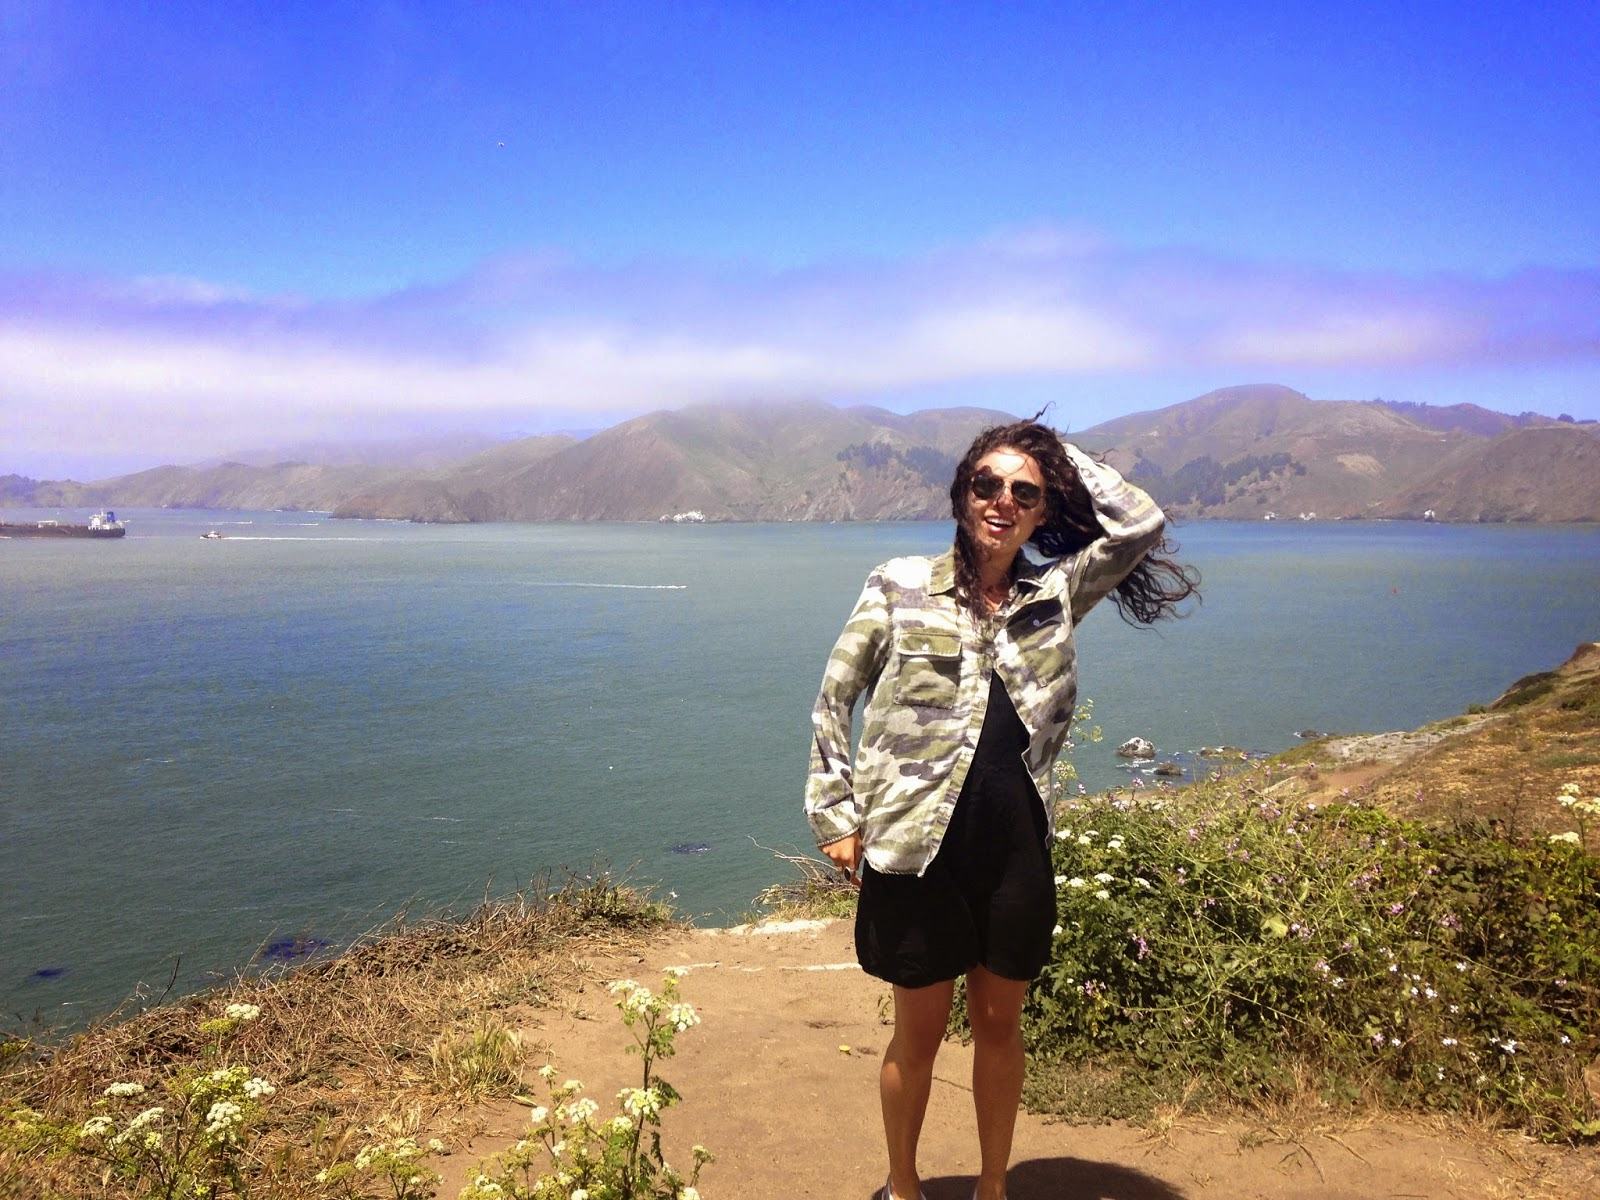 San Francisco golden gate bridge travel blog pacific coast highway cali dream California vaca camo ootd big hair